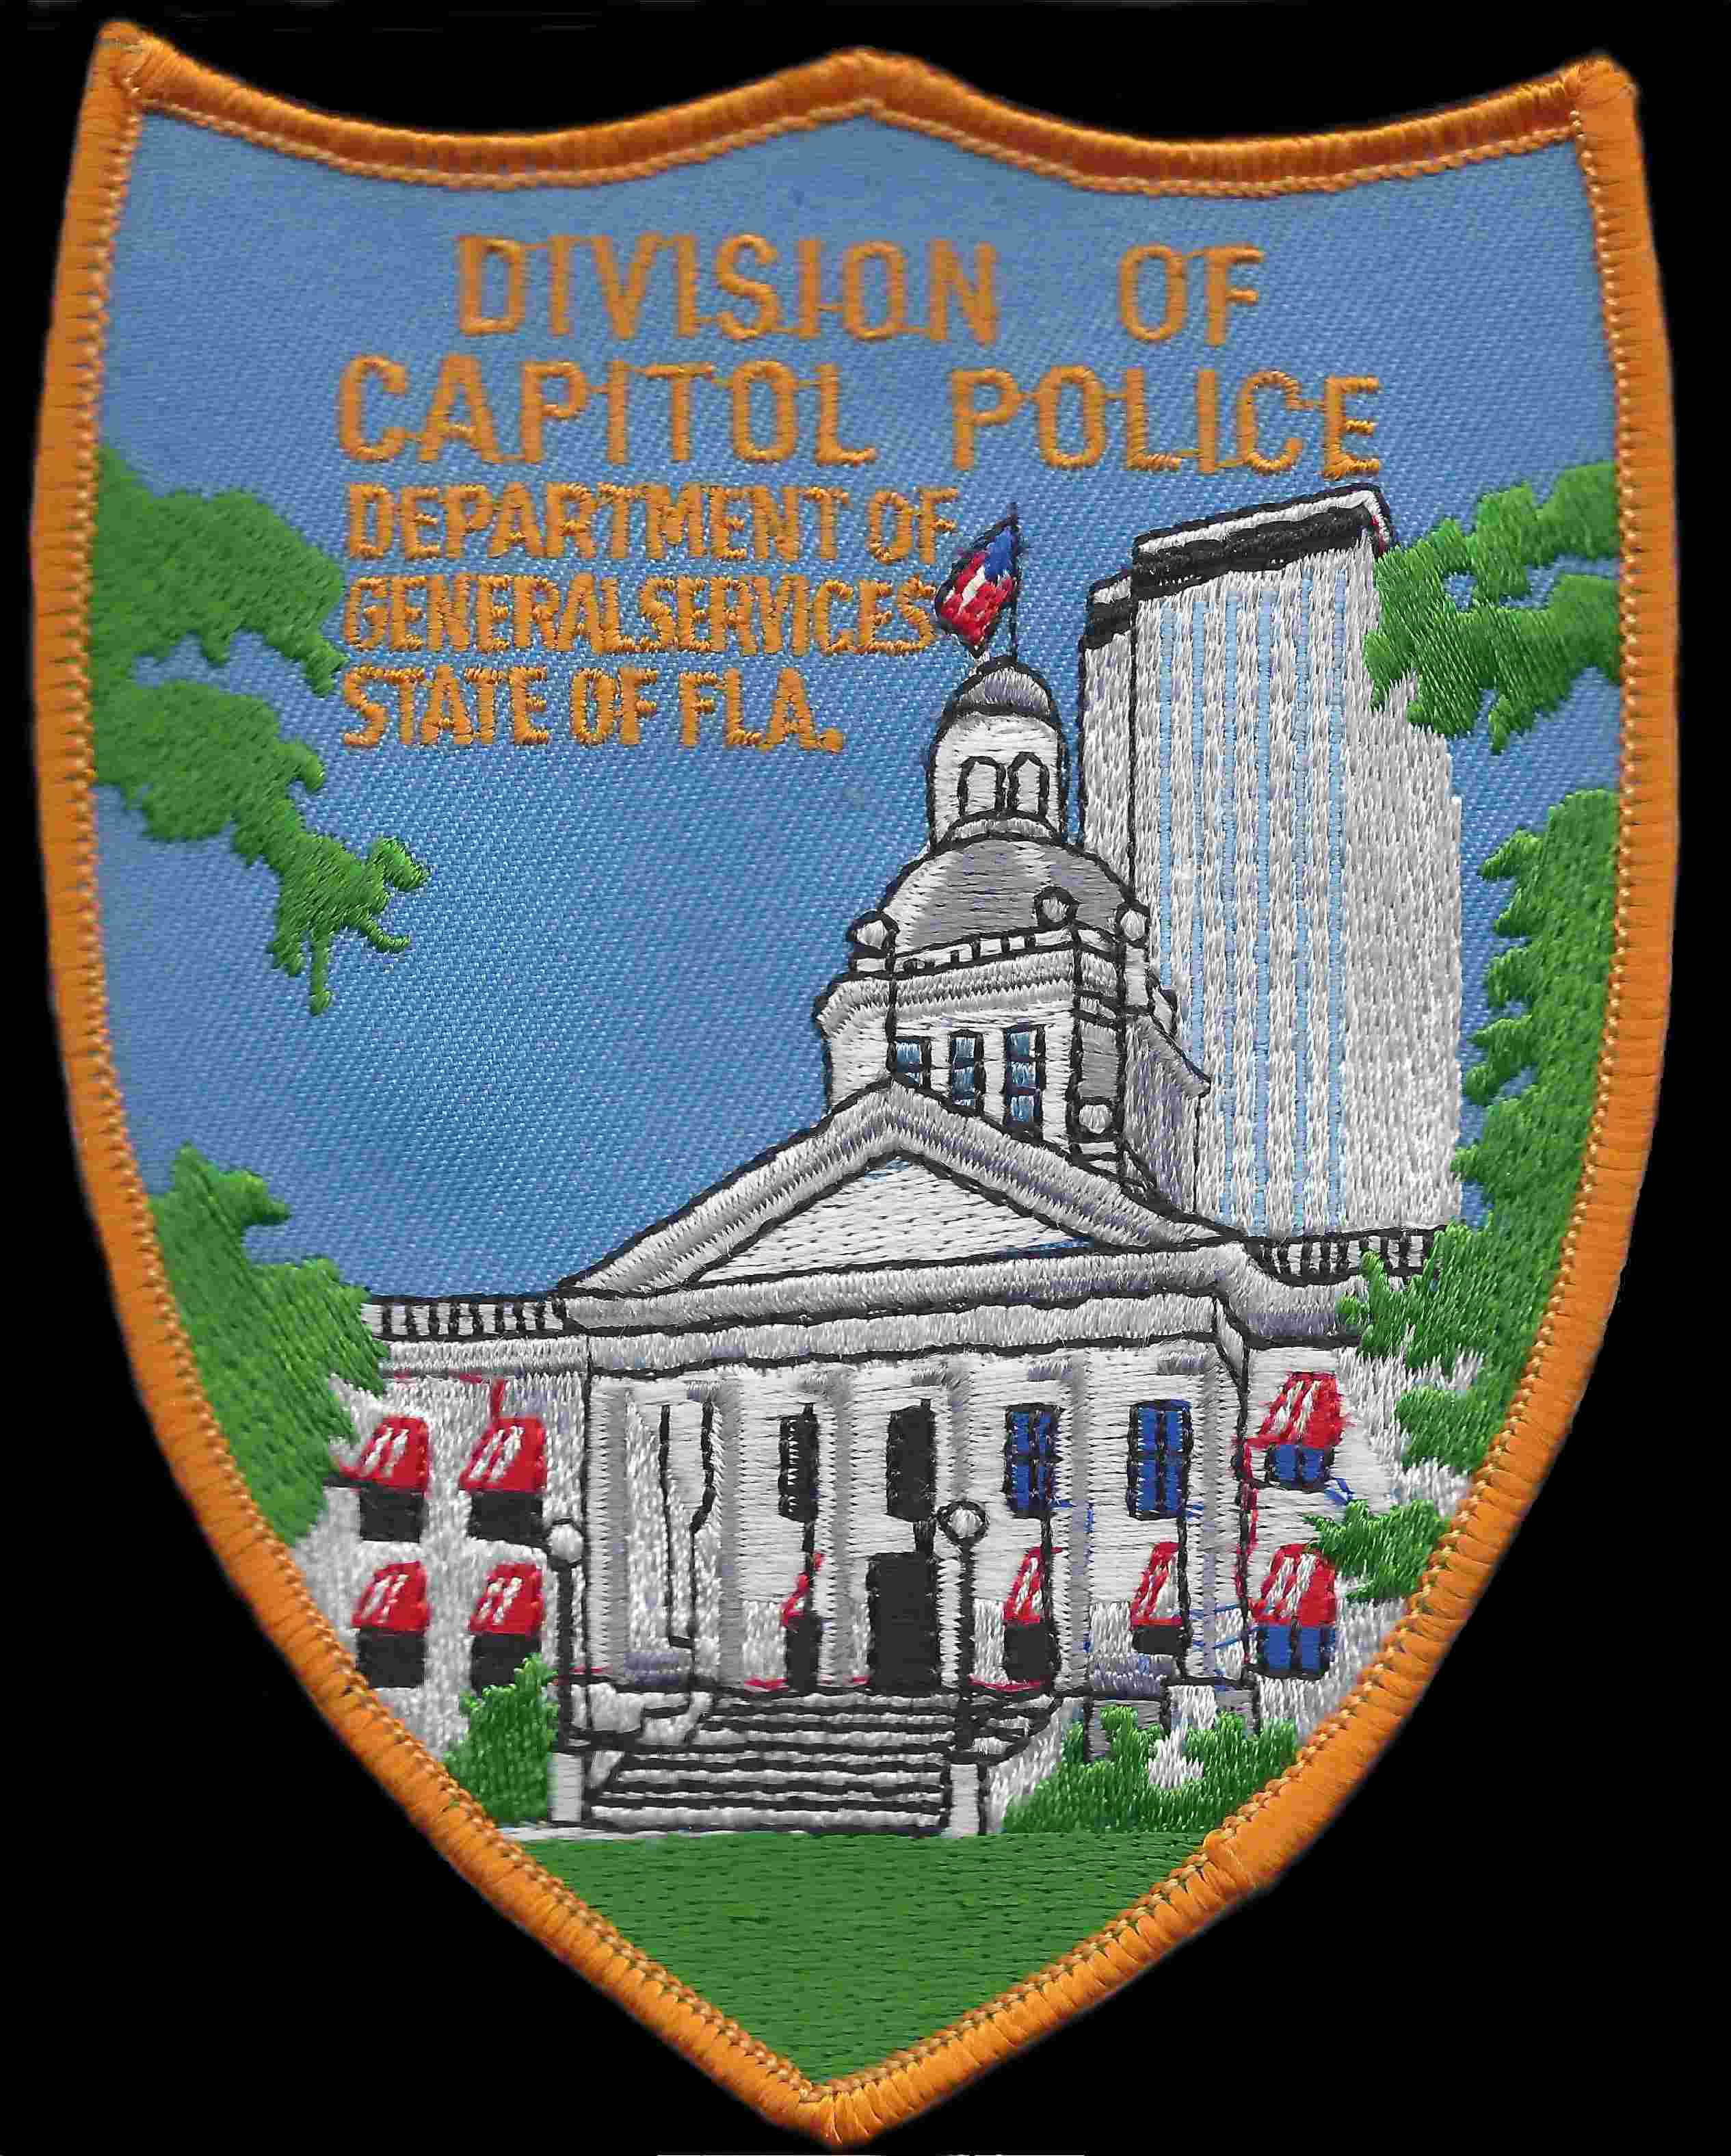 Capitol Police (DGS)